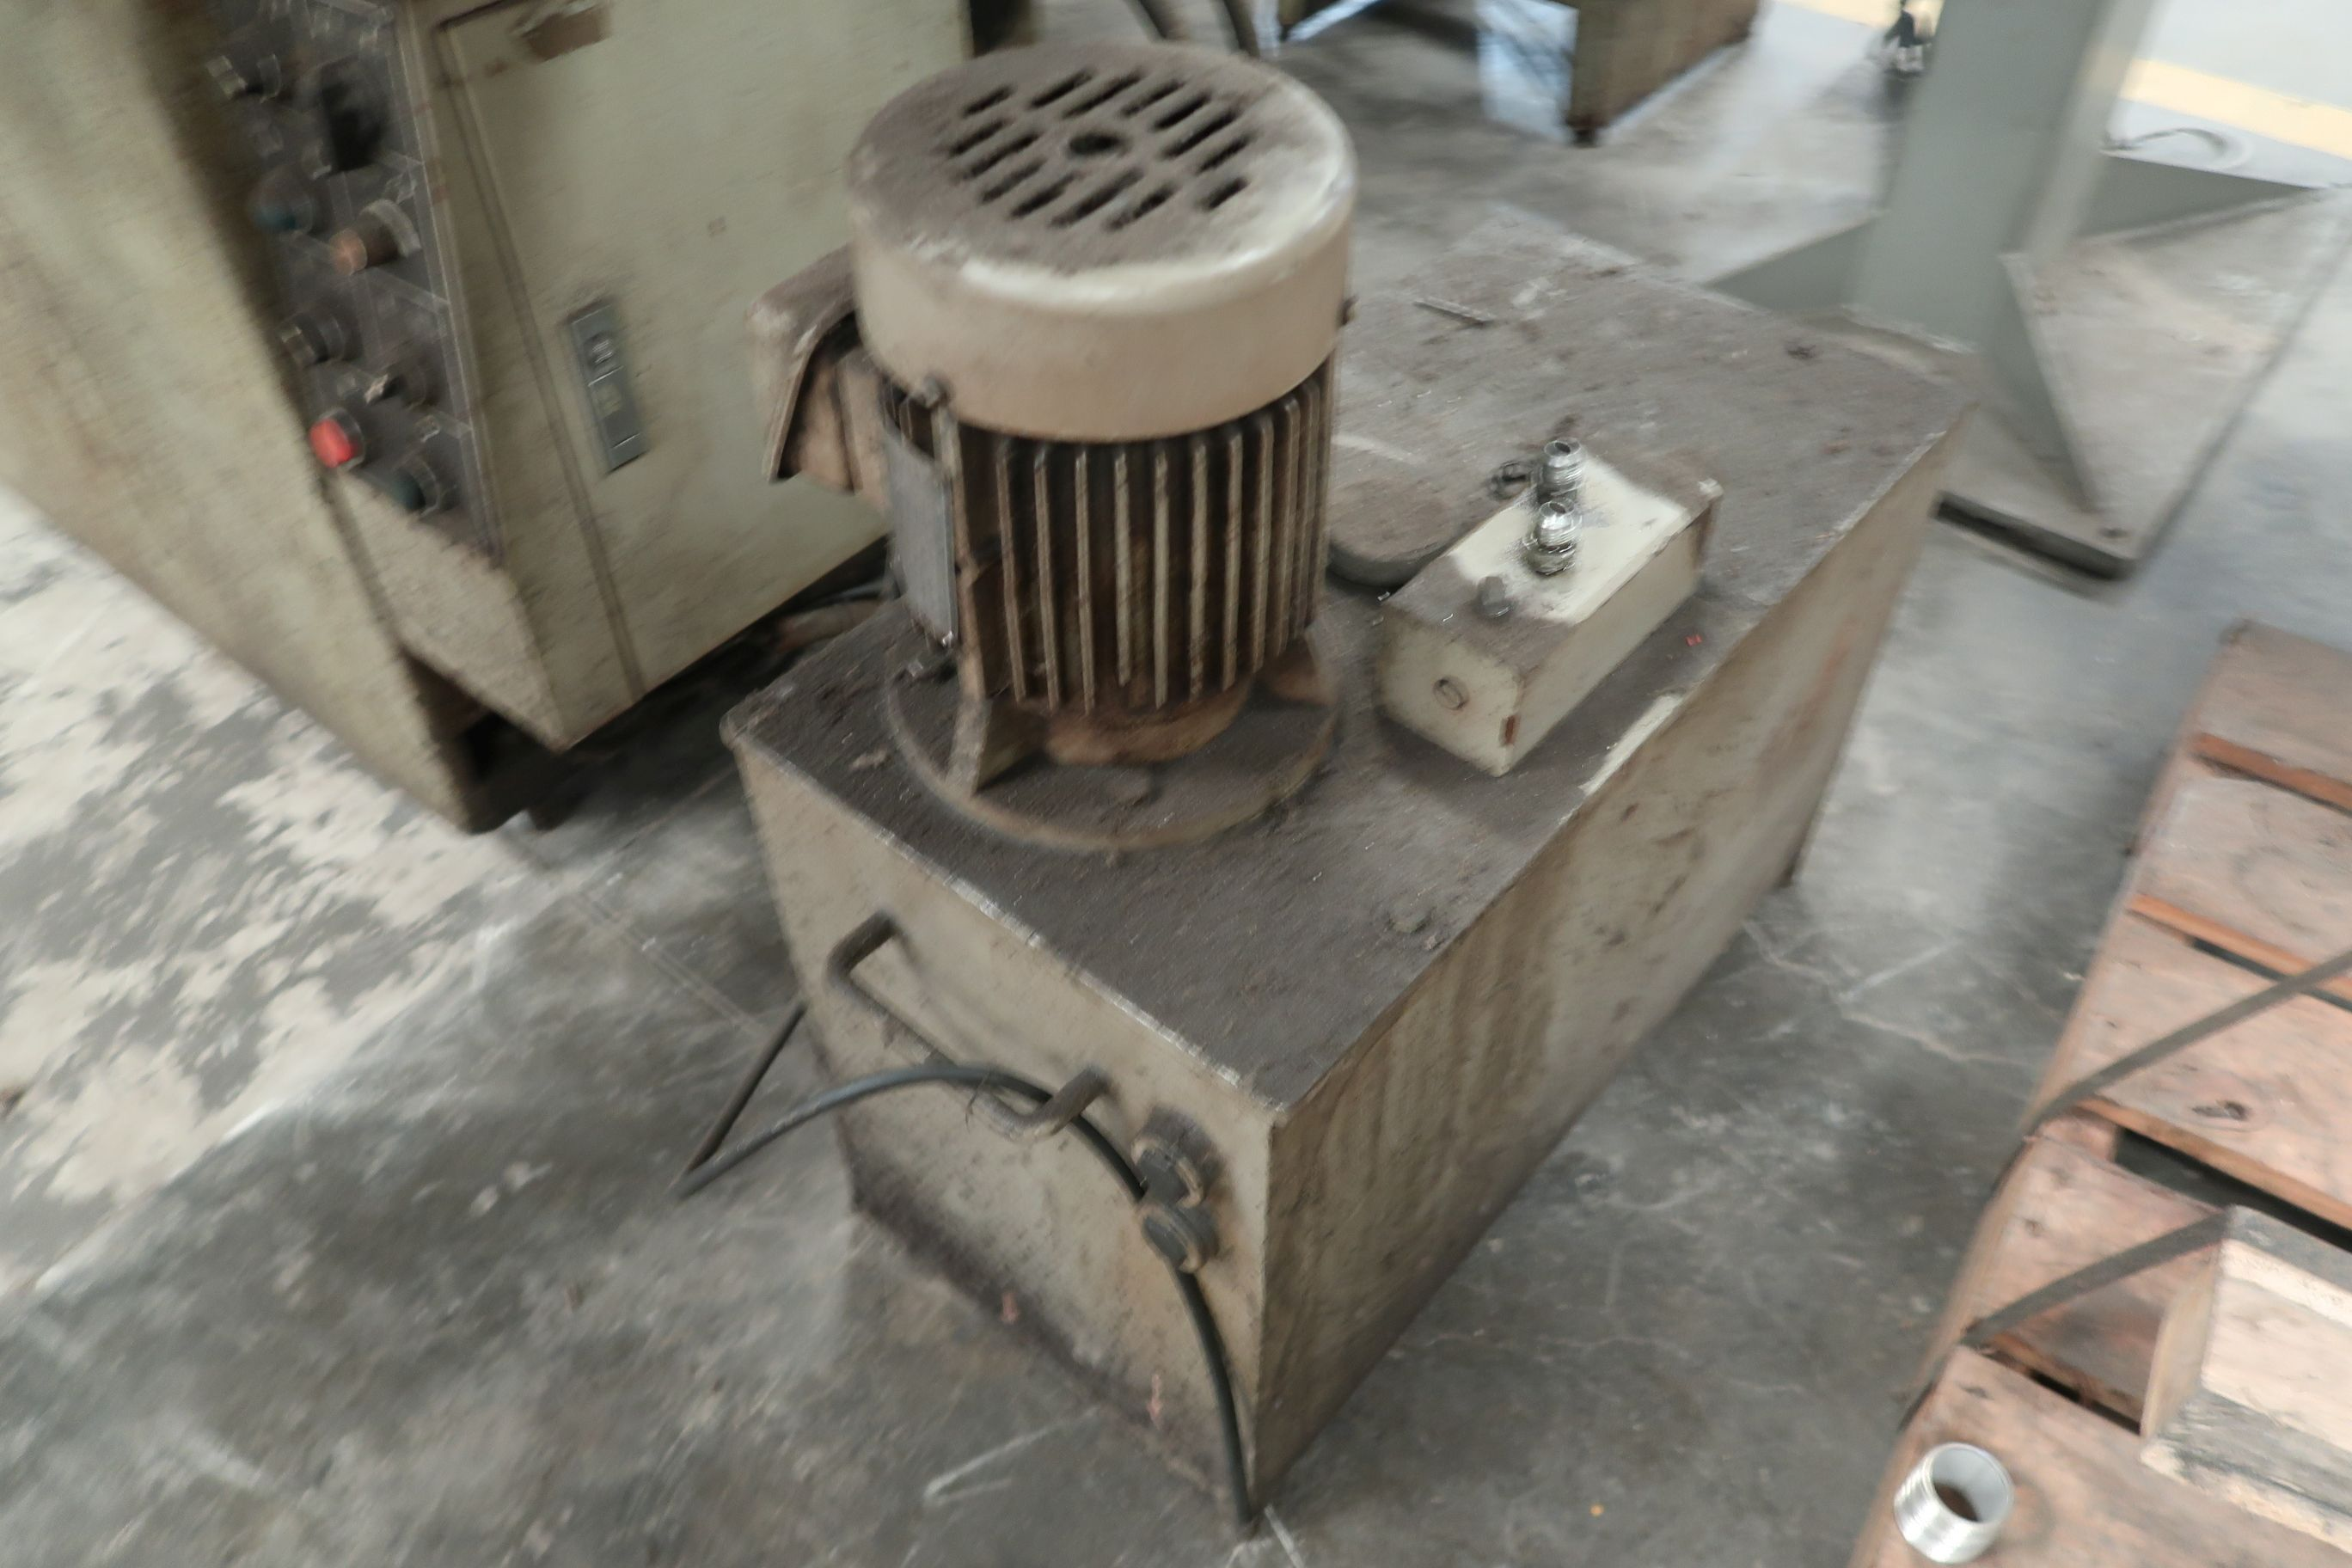 """8"""" X 16"""" KENT MODEL KGS-250AH HYDRAULIC SURFACE GRINDER; S/N 781202-17 WITH DUST COLLECTOR - Image 6 of 7"""